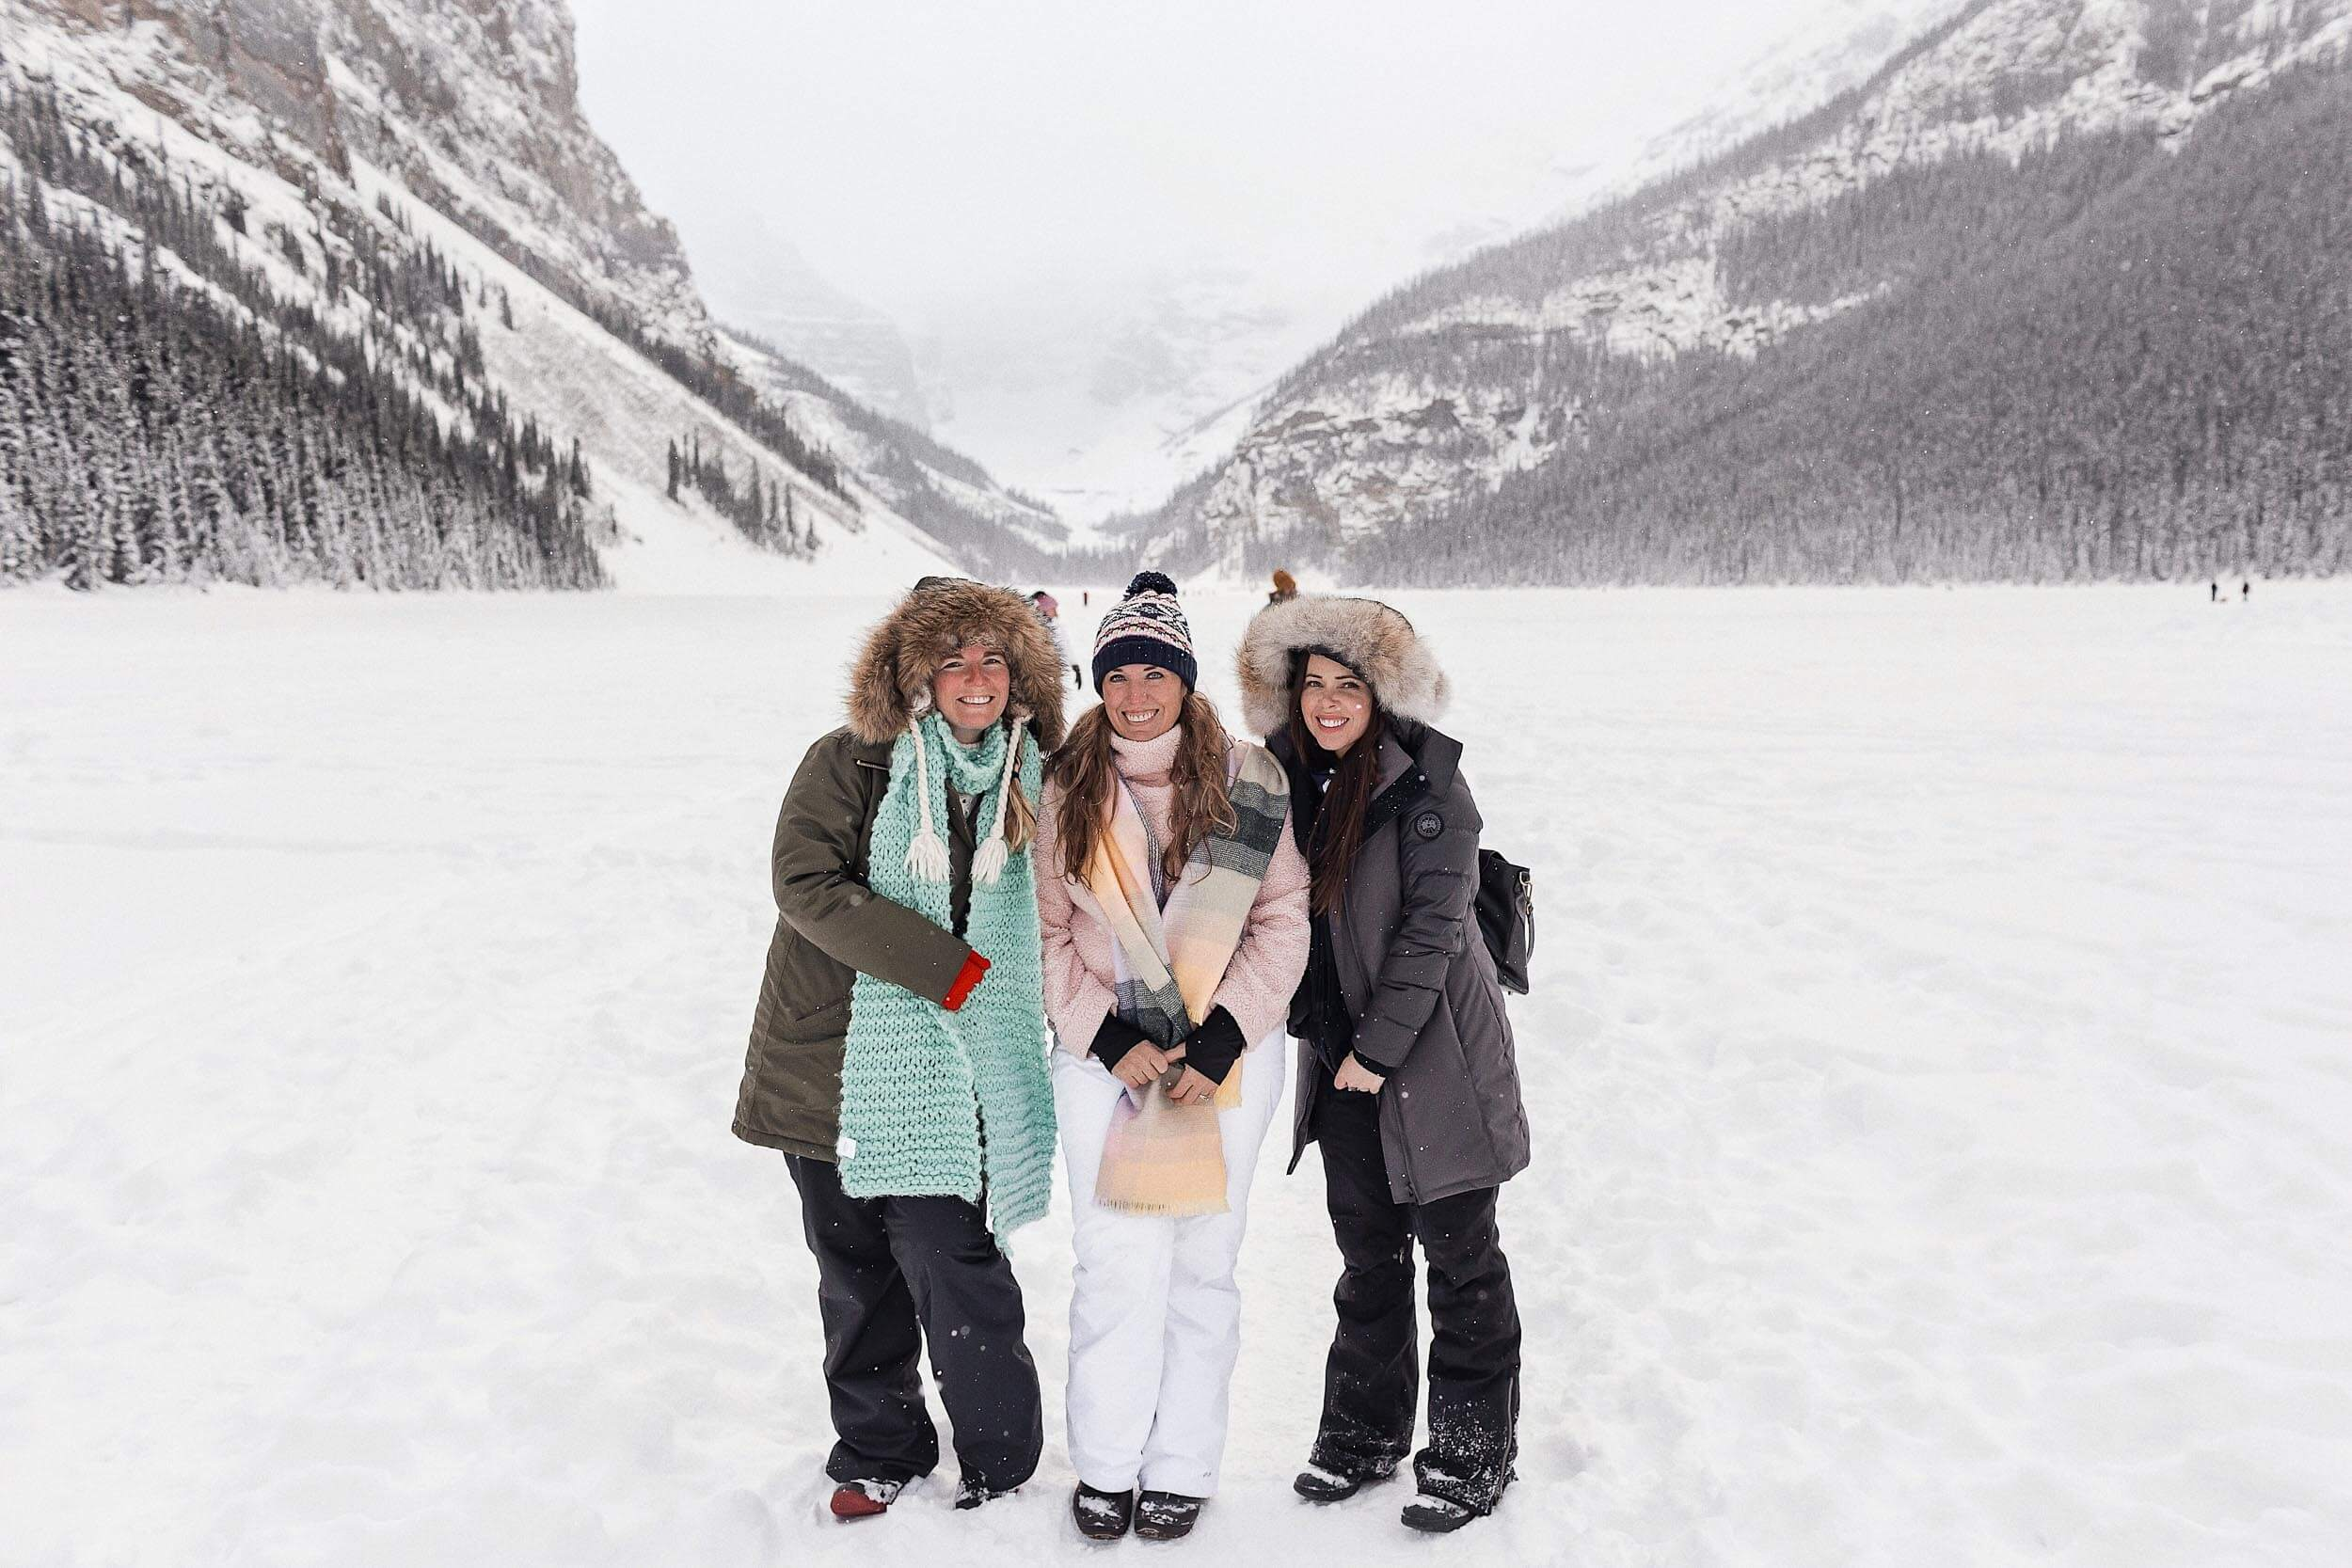 ckanani-banff-winter-a-guide-to-visiting-33.jpg